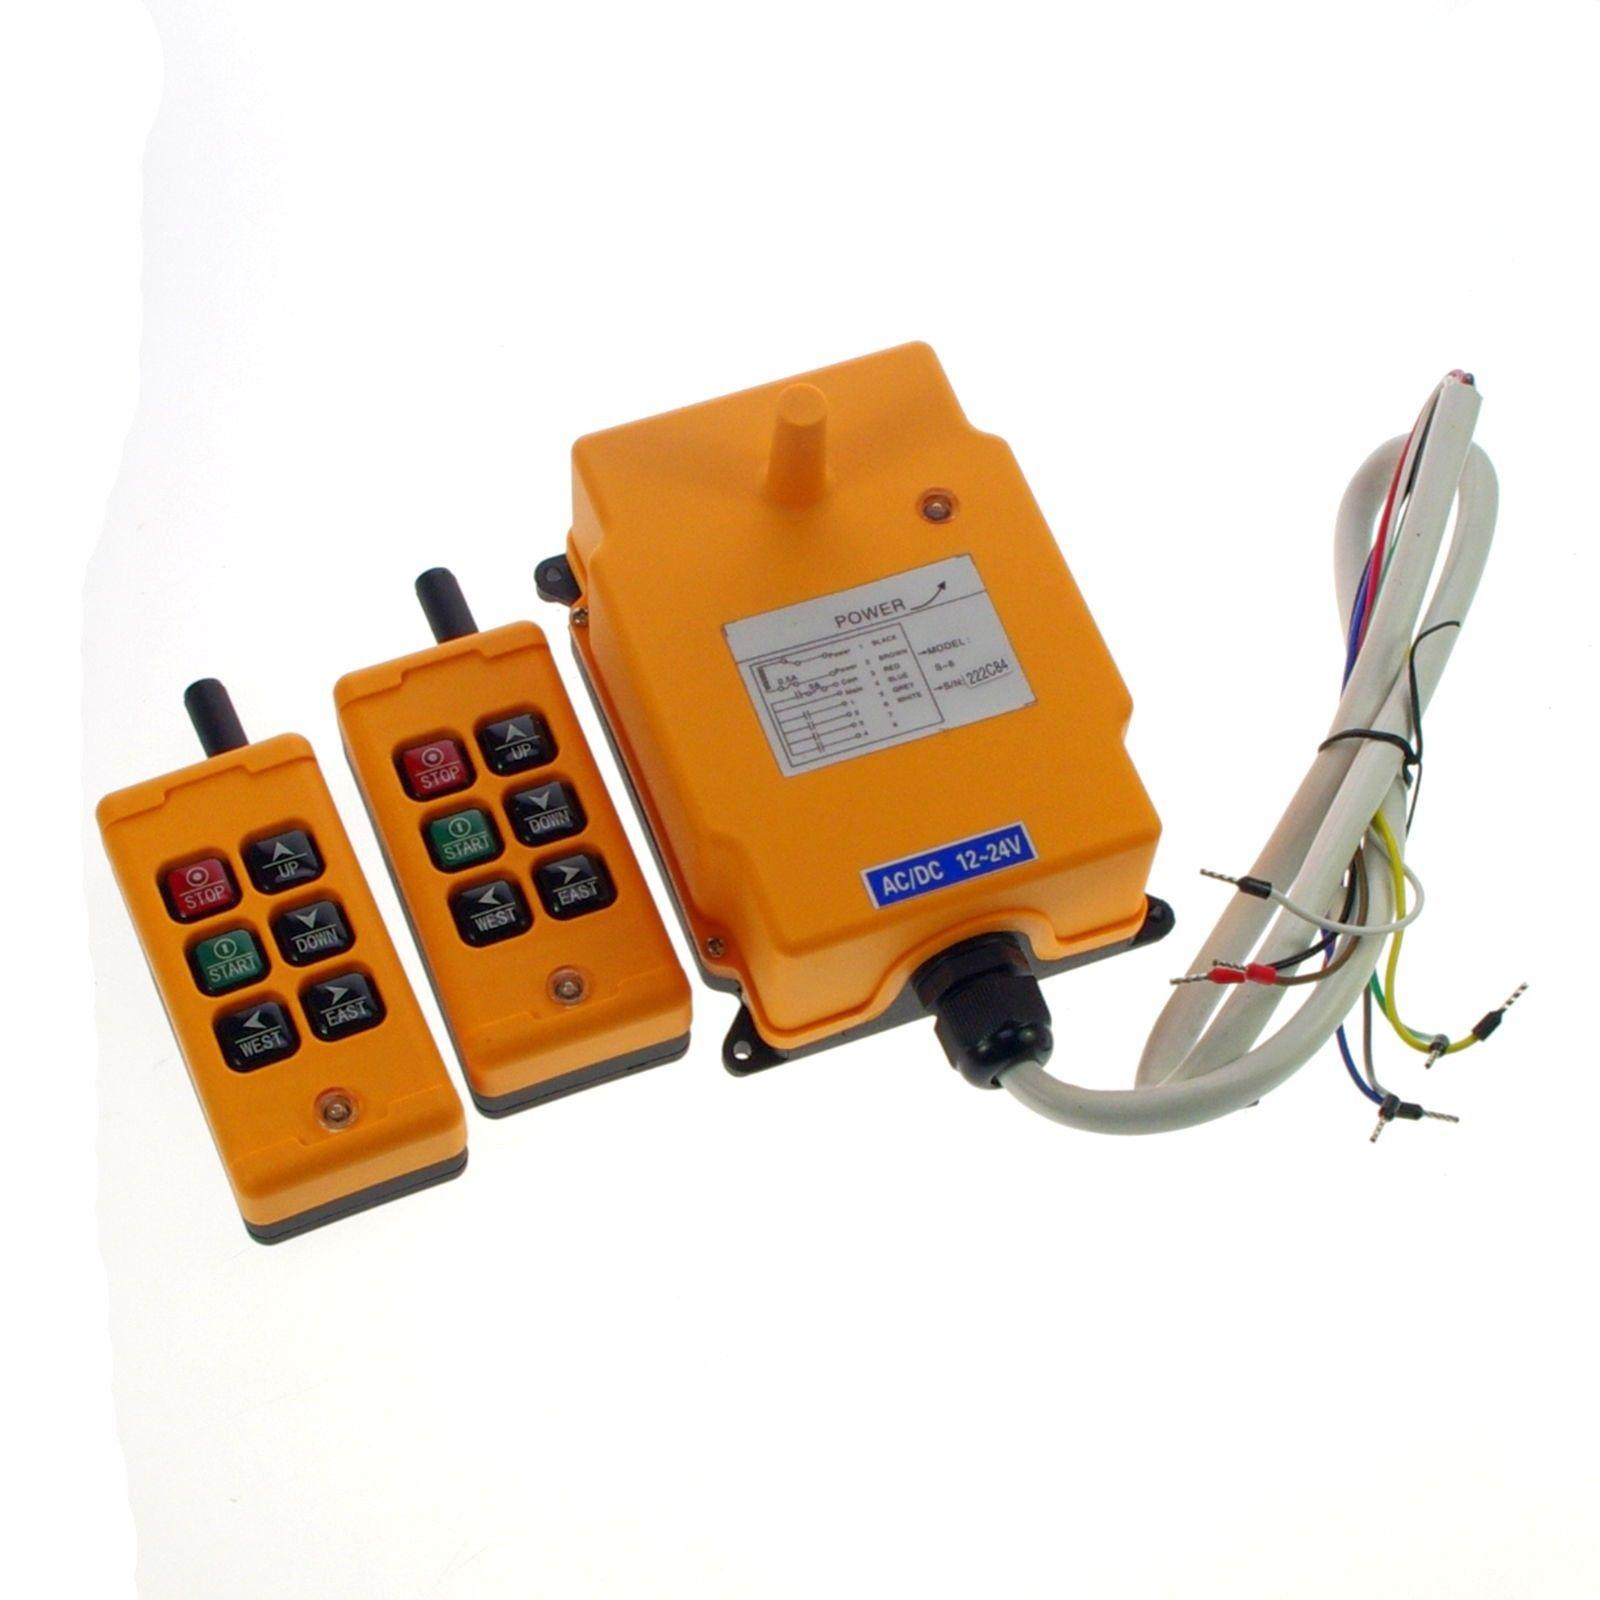 12V-415V 6 Channels 1 Speed 2 Transmitters Hoist Crane Truck Radio Remote System Controller CE 2 speed 2 transmitters 10 channels hoist crane industrial truck radio remote control push button switch system controller